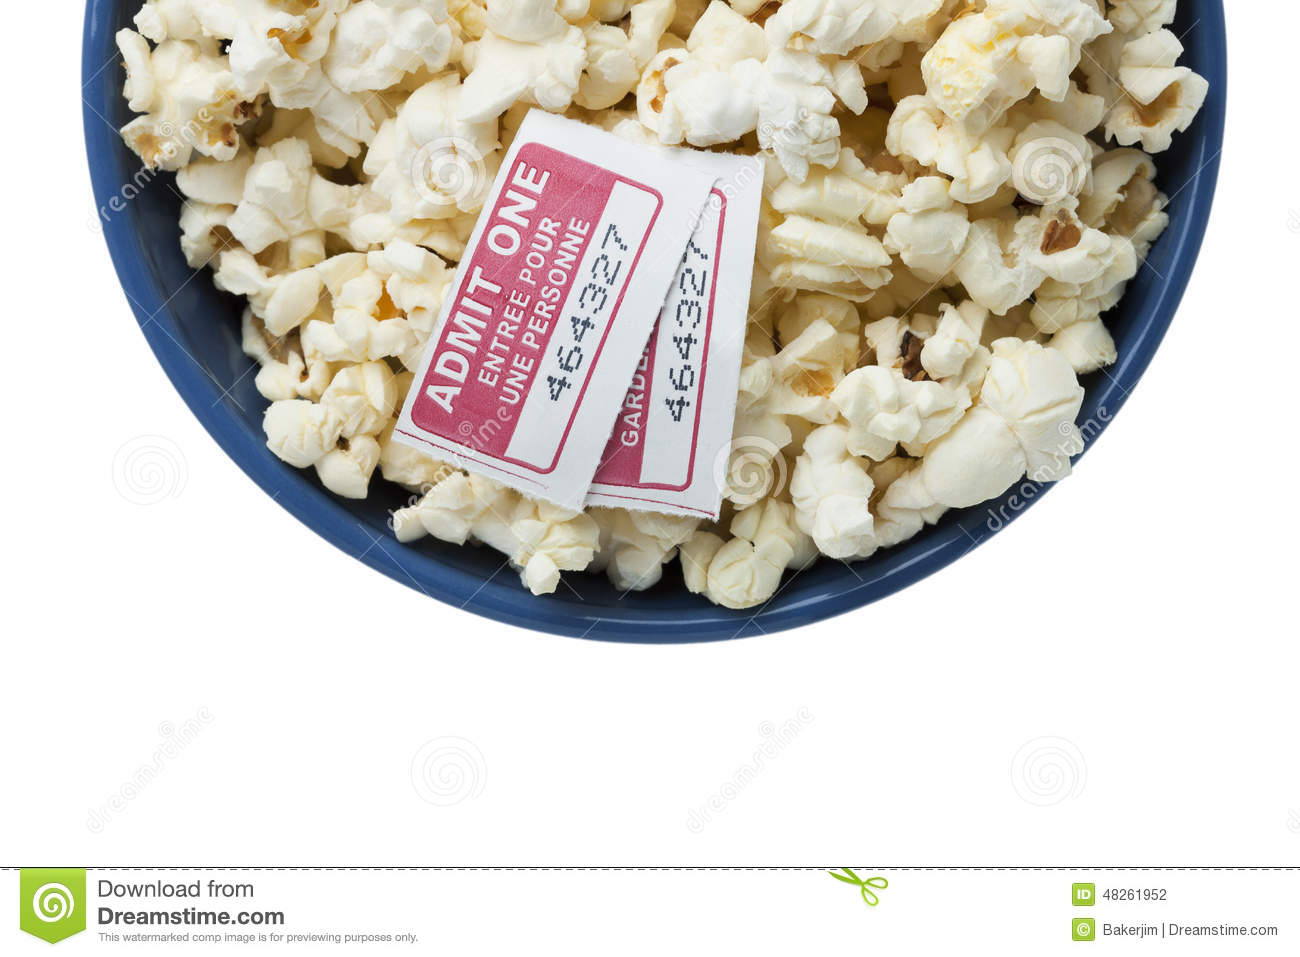 how to play pass the popcorn